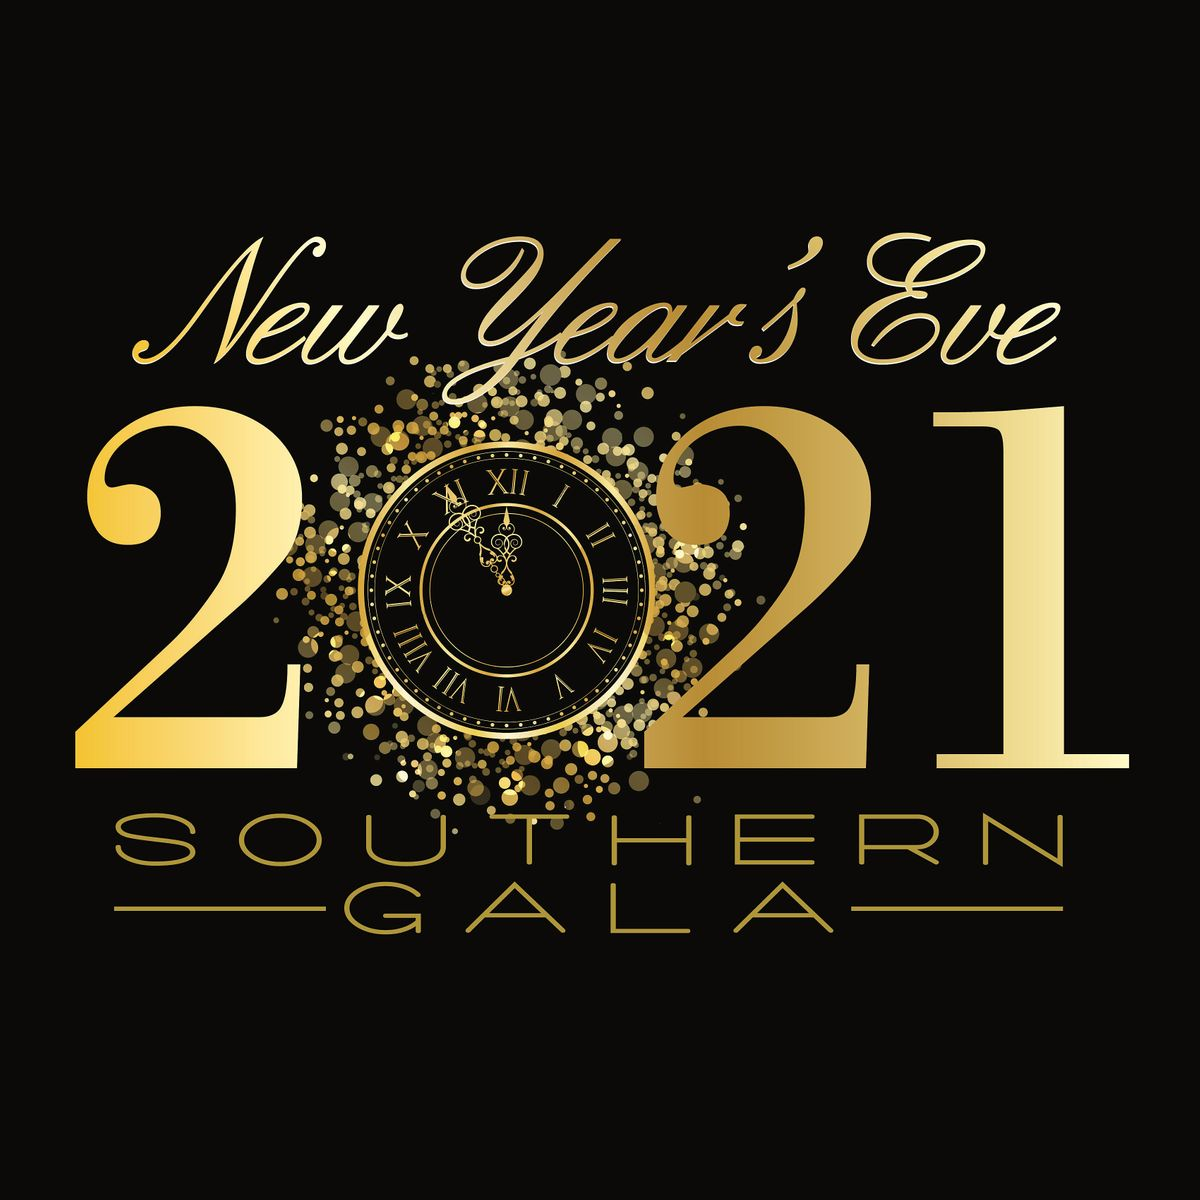 New Years Eve 2021 Southern Gala, Hilton Greenville, 31 December to 1 January